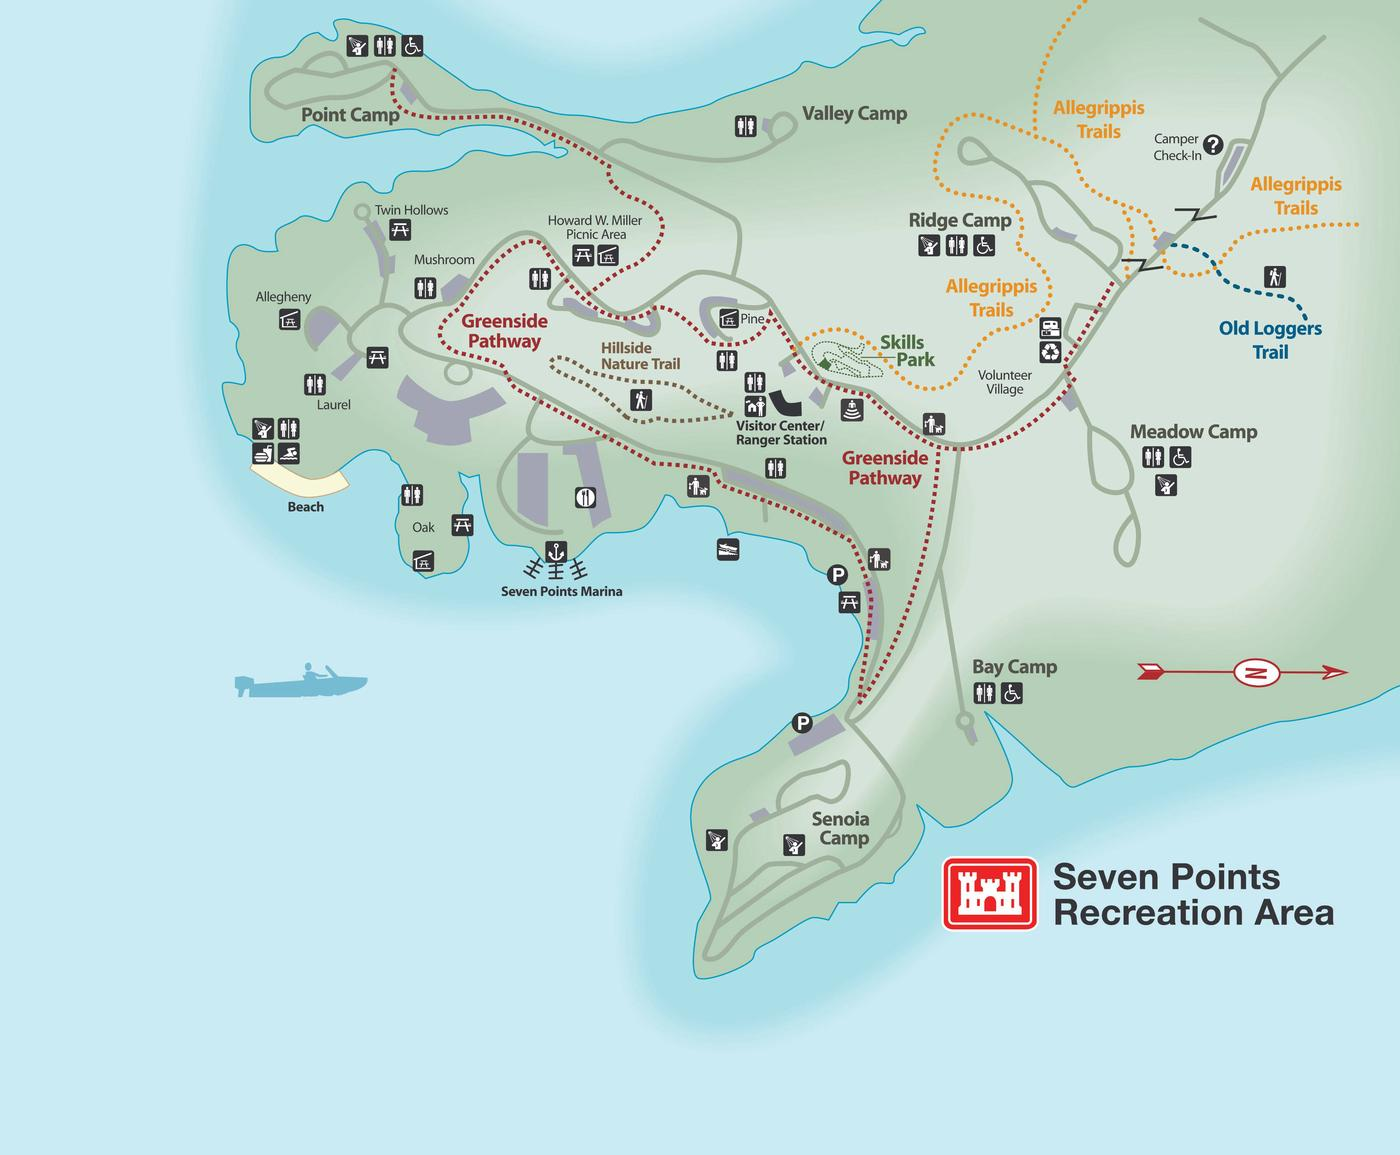 Seven Points Recreation area mapCampground map